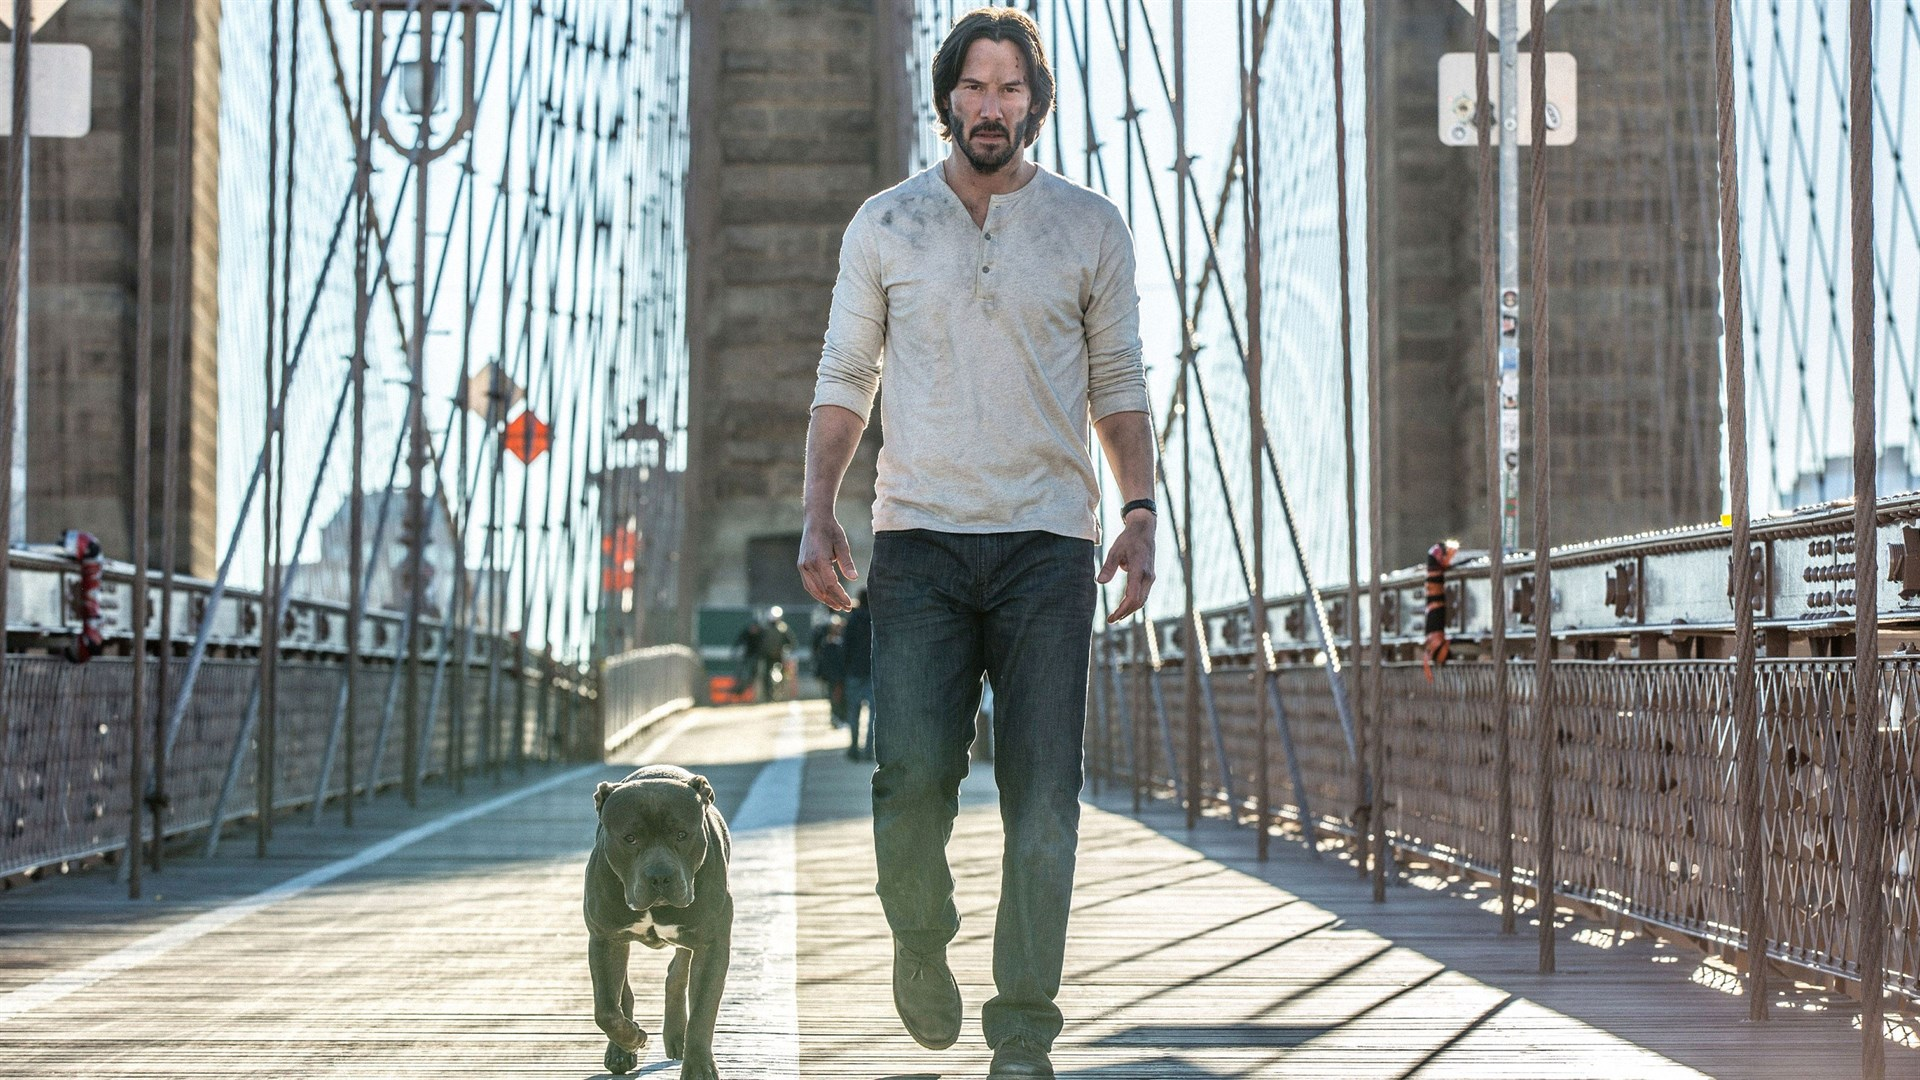 John Wick 2 Brooklyn Bridge